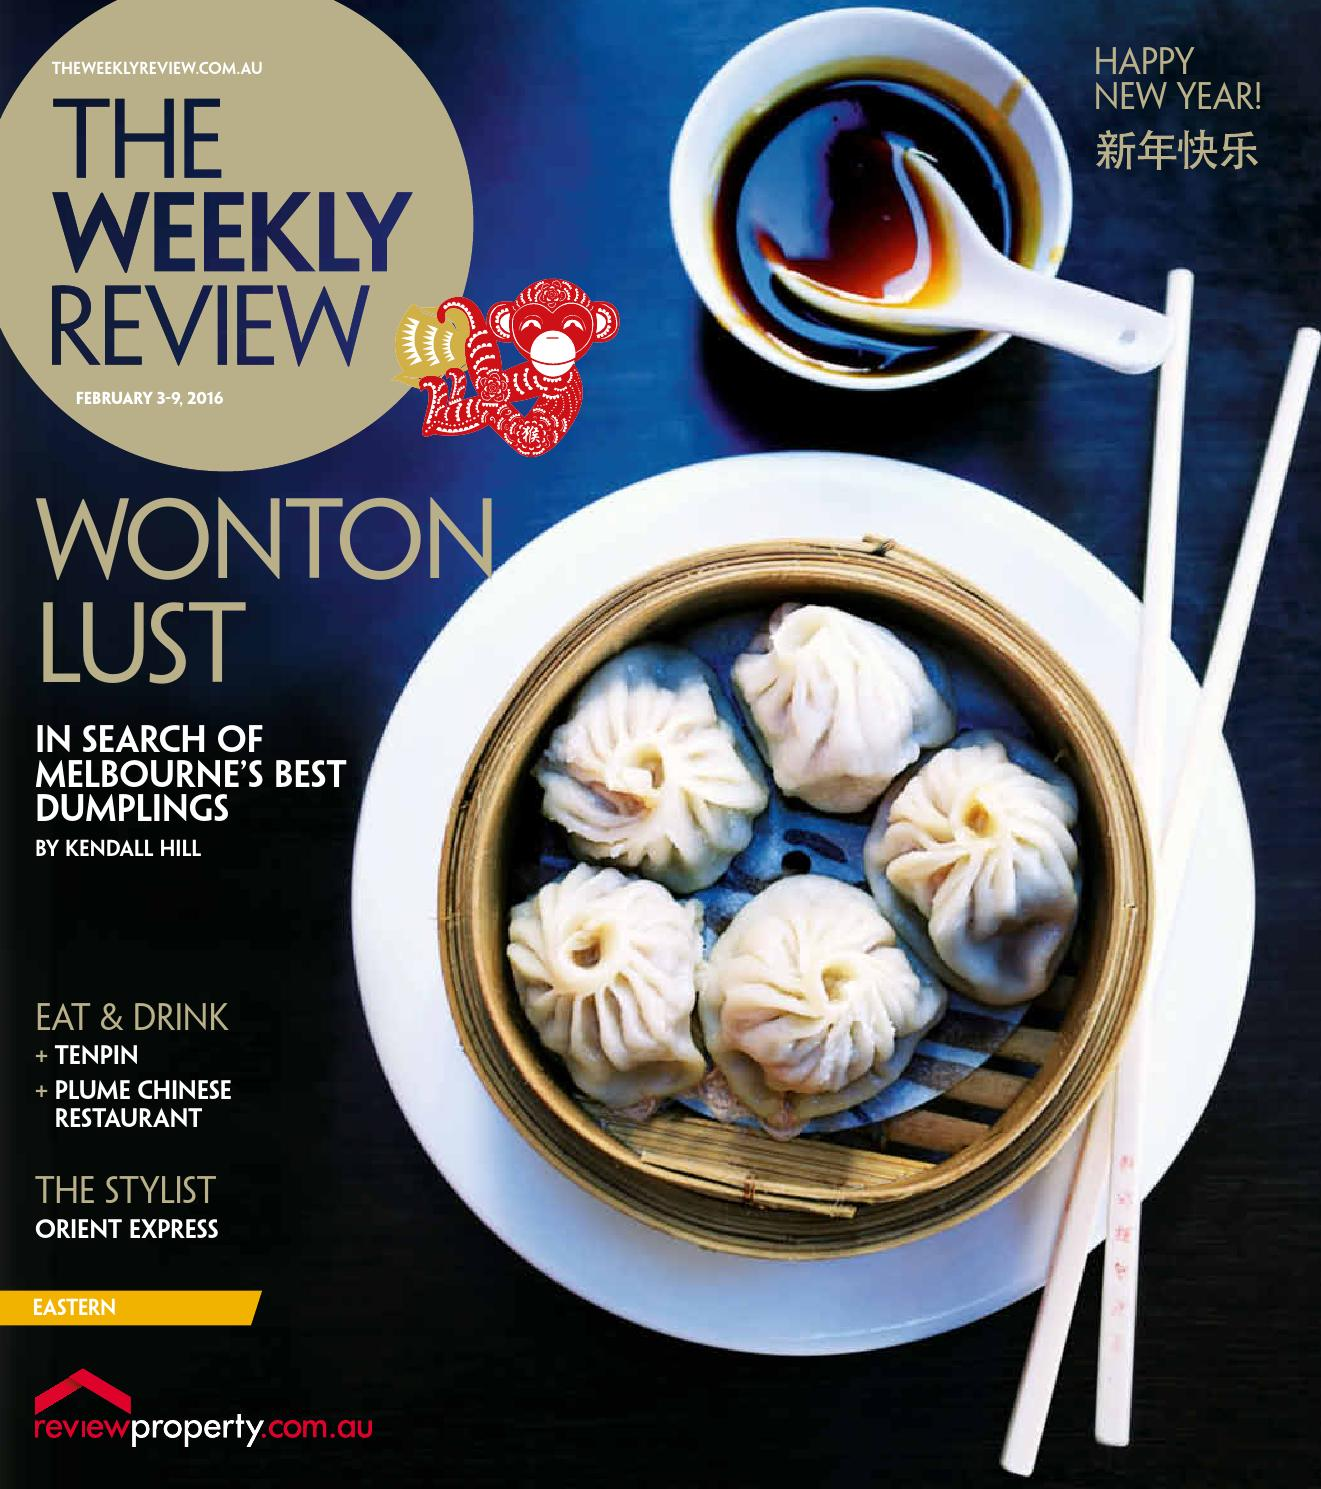 715aca1e89 The Weekly Review Eastern by The Weekly Review - issuu